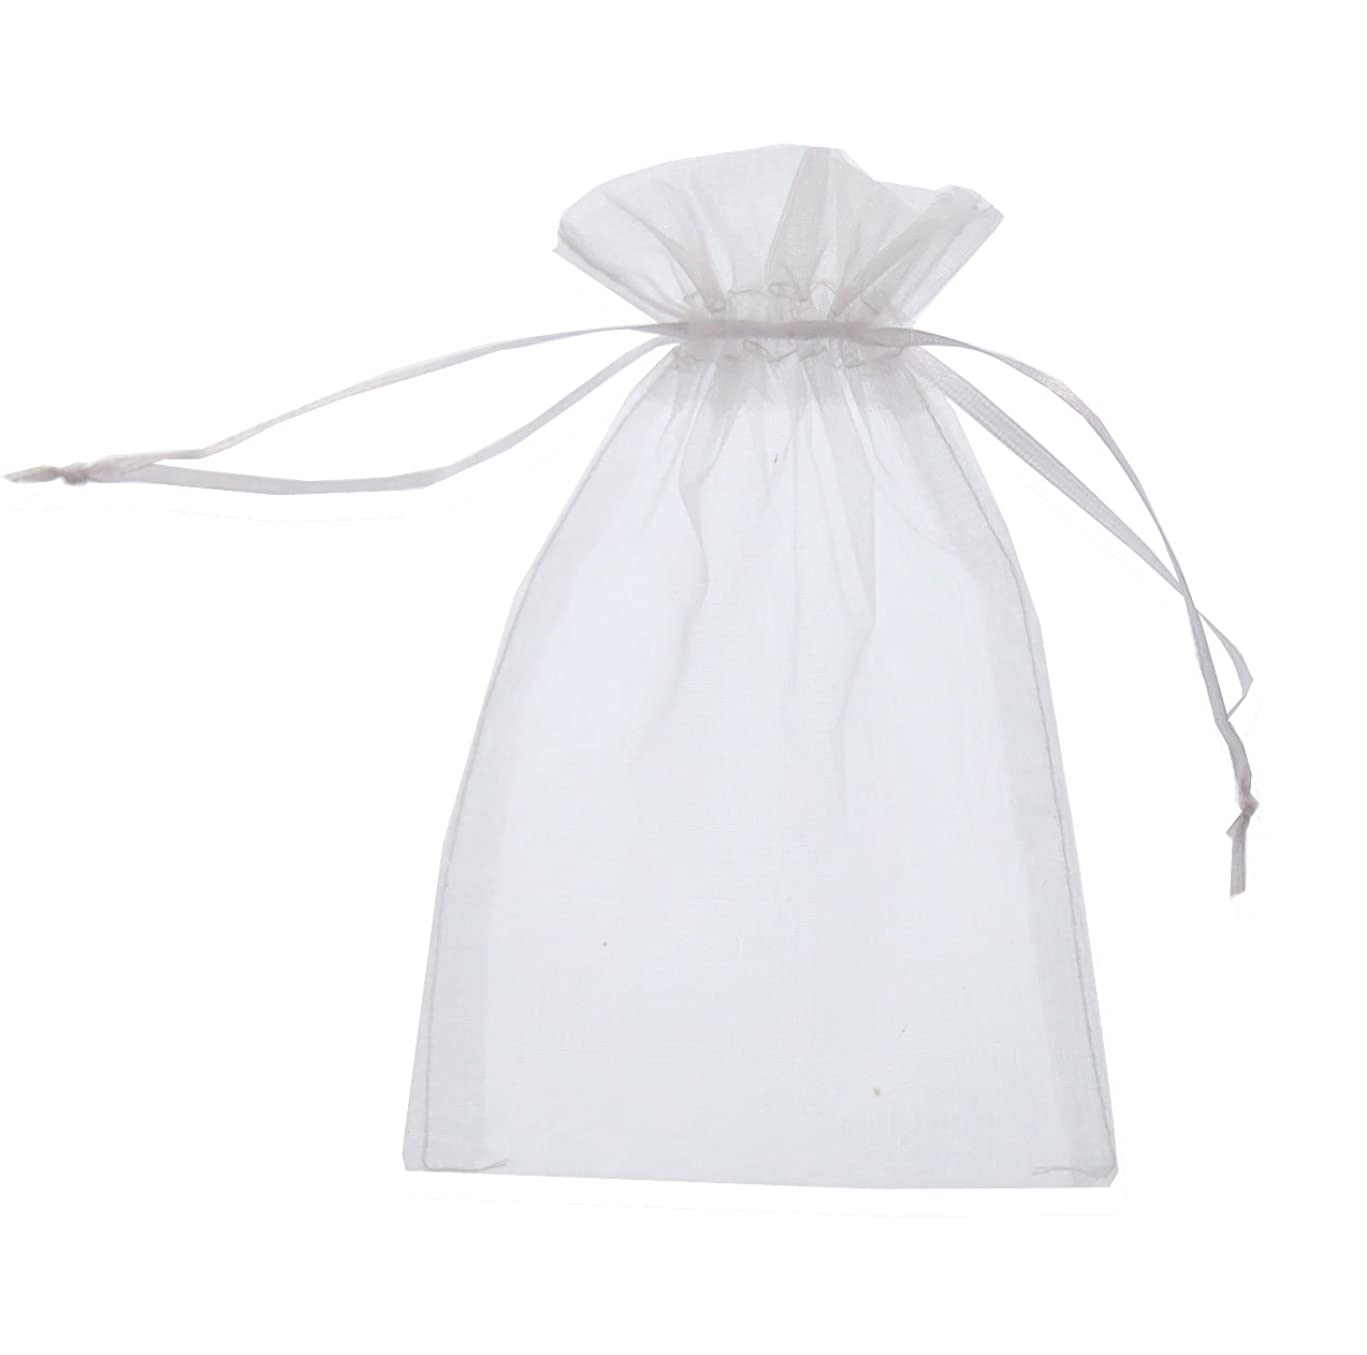 SumDirect 50Pcs 4x6 inches Sheer Organza Bags Jewelry Drawstring Pouches Wedding Party Christmas Favor Gift Bags? (White)